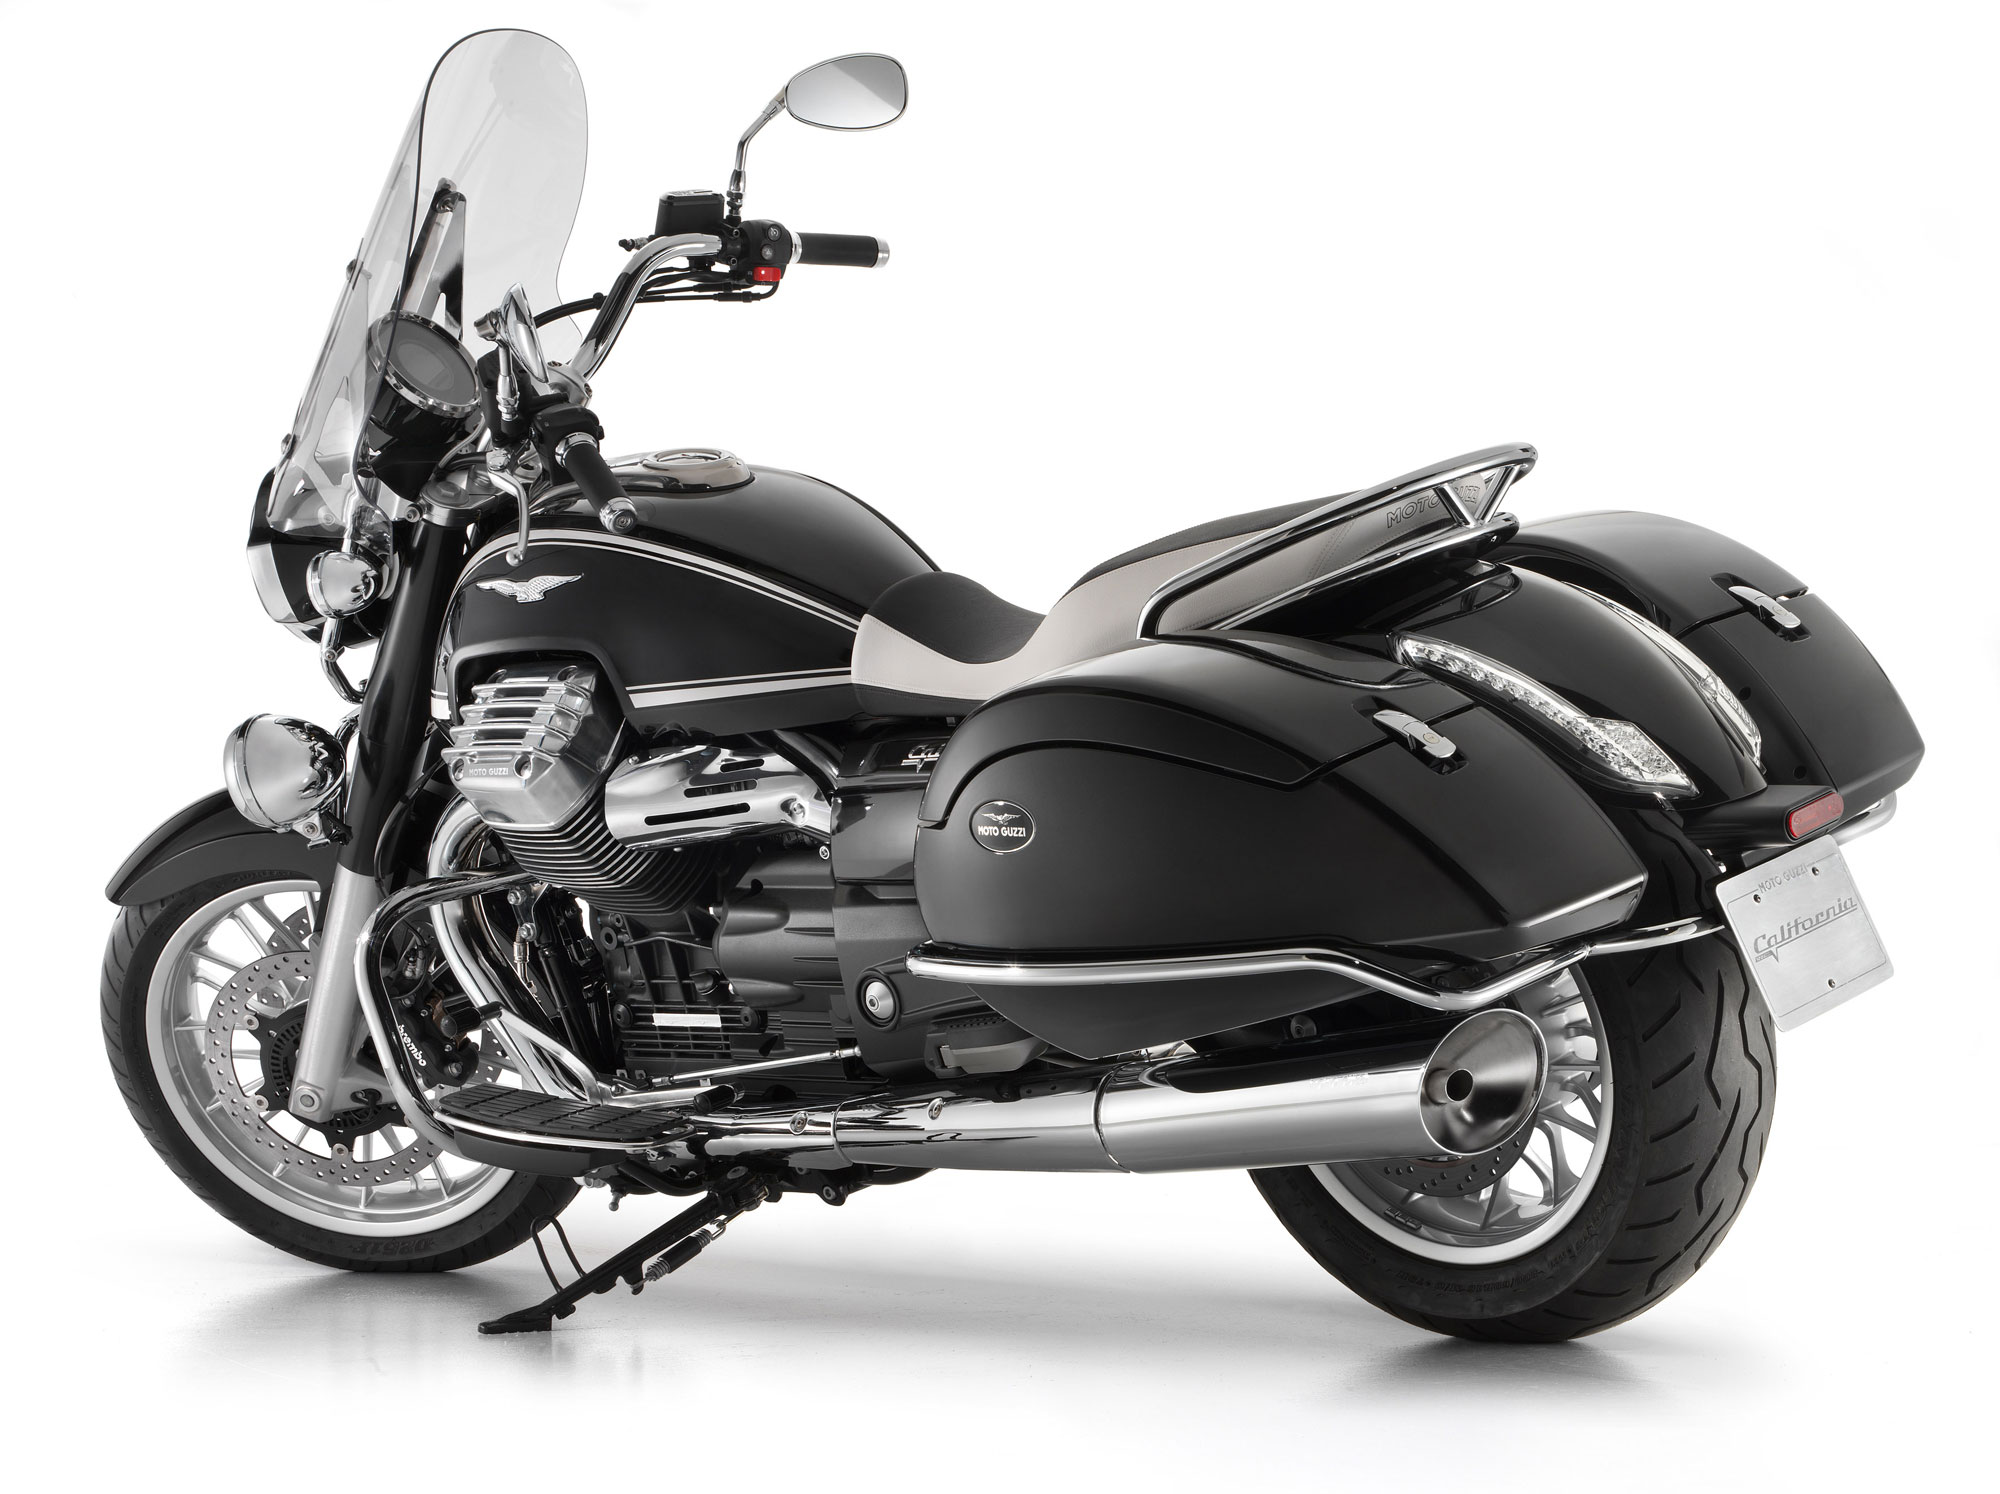 moto guzzi california 1400 touring specs 2014 2015 autoevolution. Black Bedroom Furniture Sets. Home Design Ideas